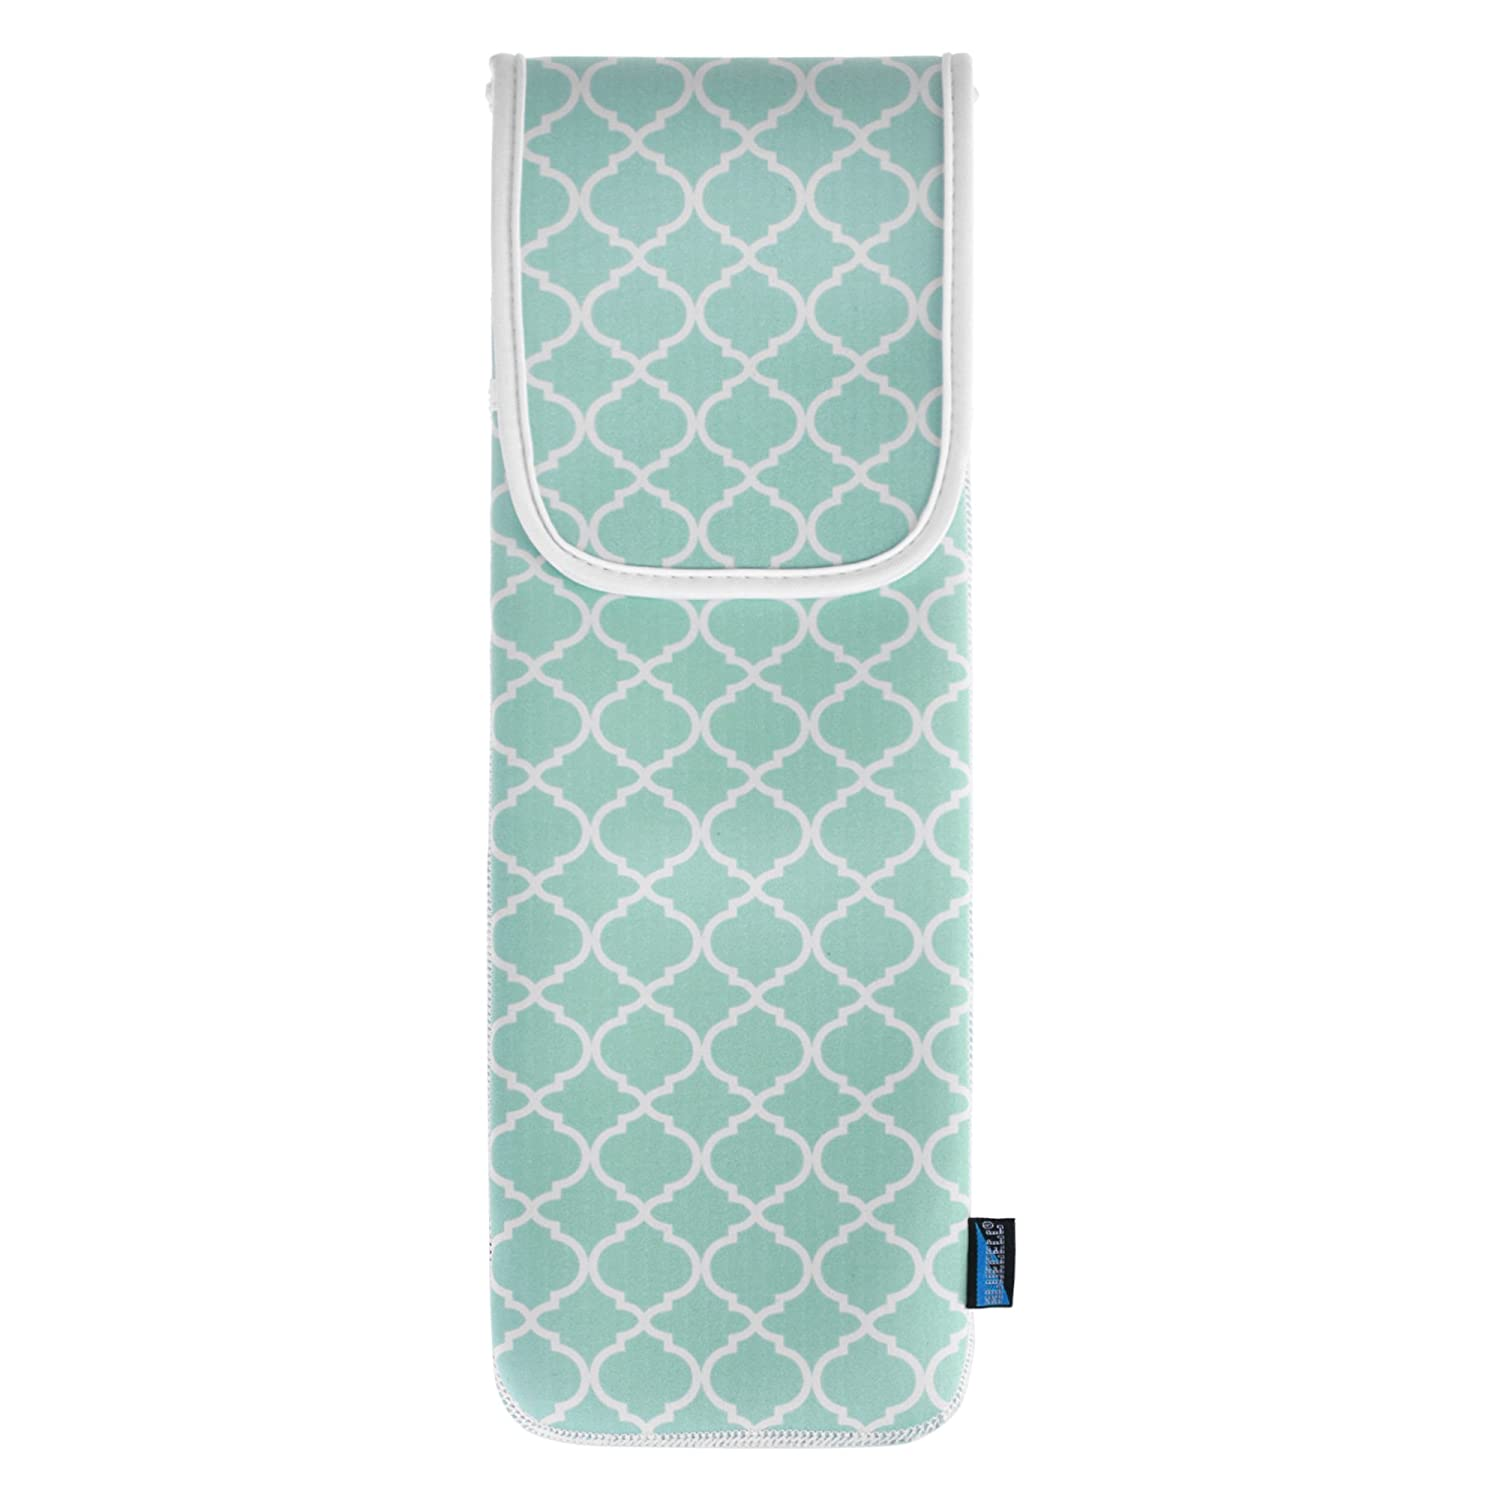 Bluecell Water-resistant Neoprene Curling Iron Holder Flat Iron Curling Wand Travel Cover Case Bag Pouch 15 x 5 Inches Aqua Blue